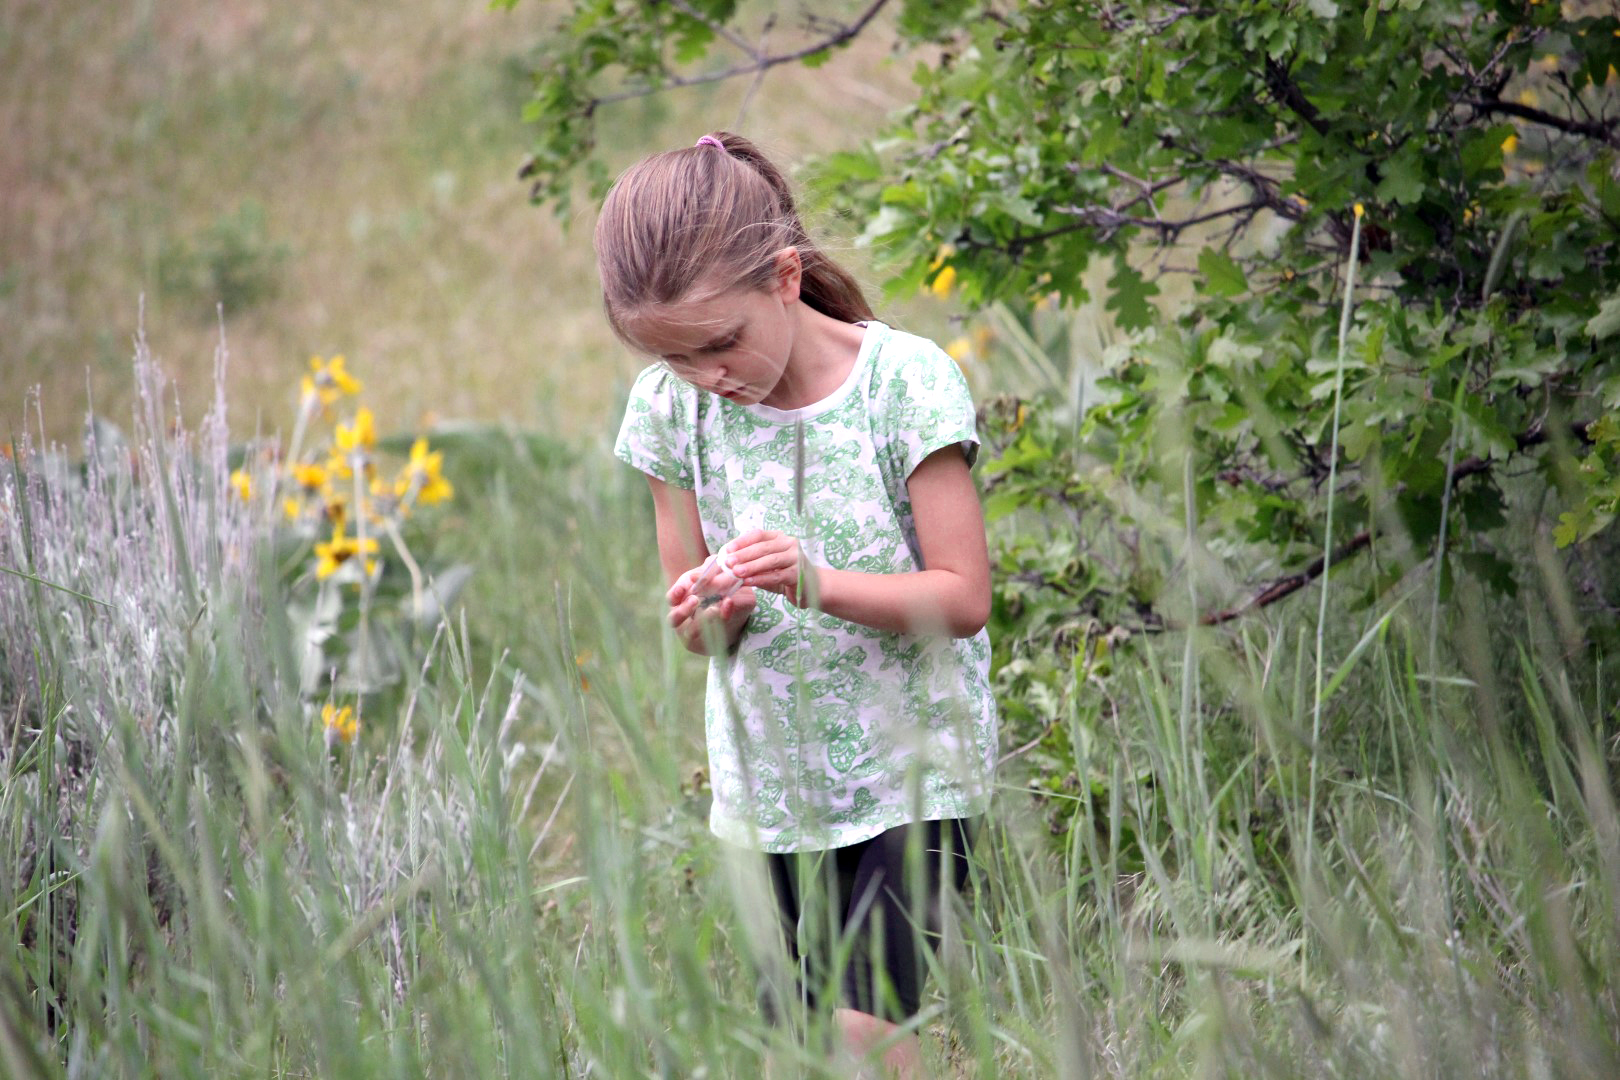 Young girl exploring nature in a field.